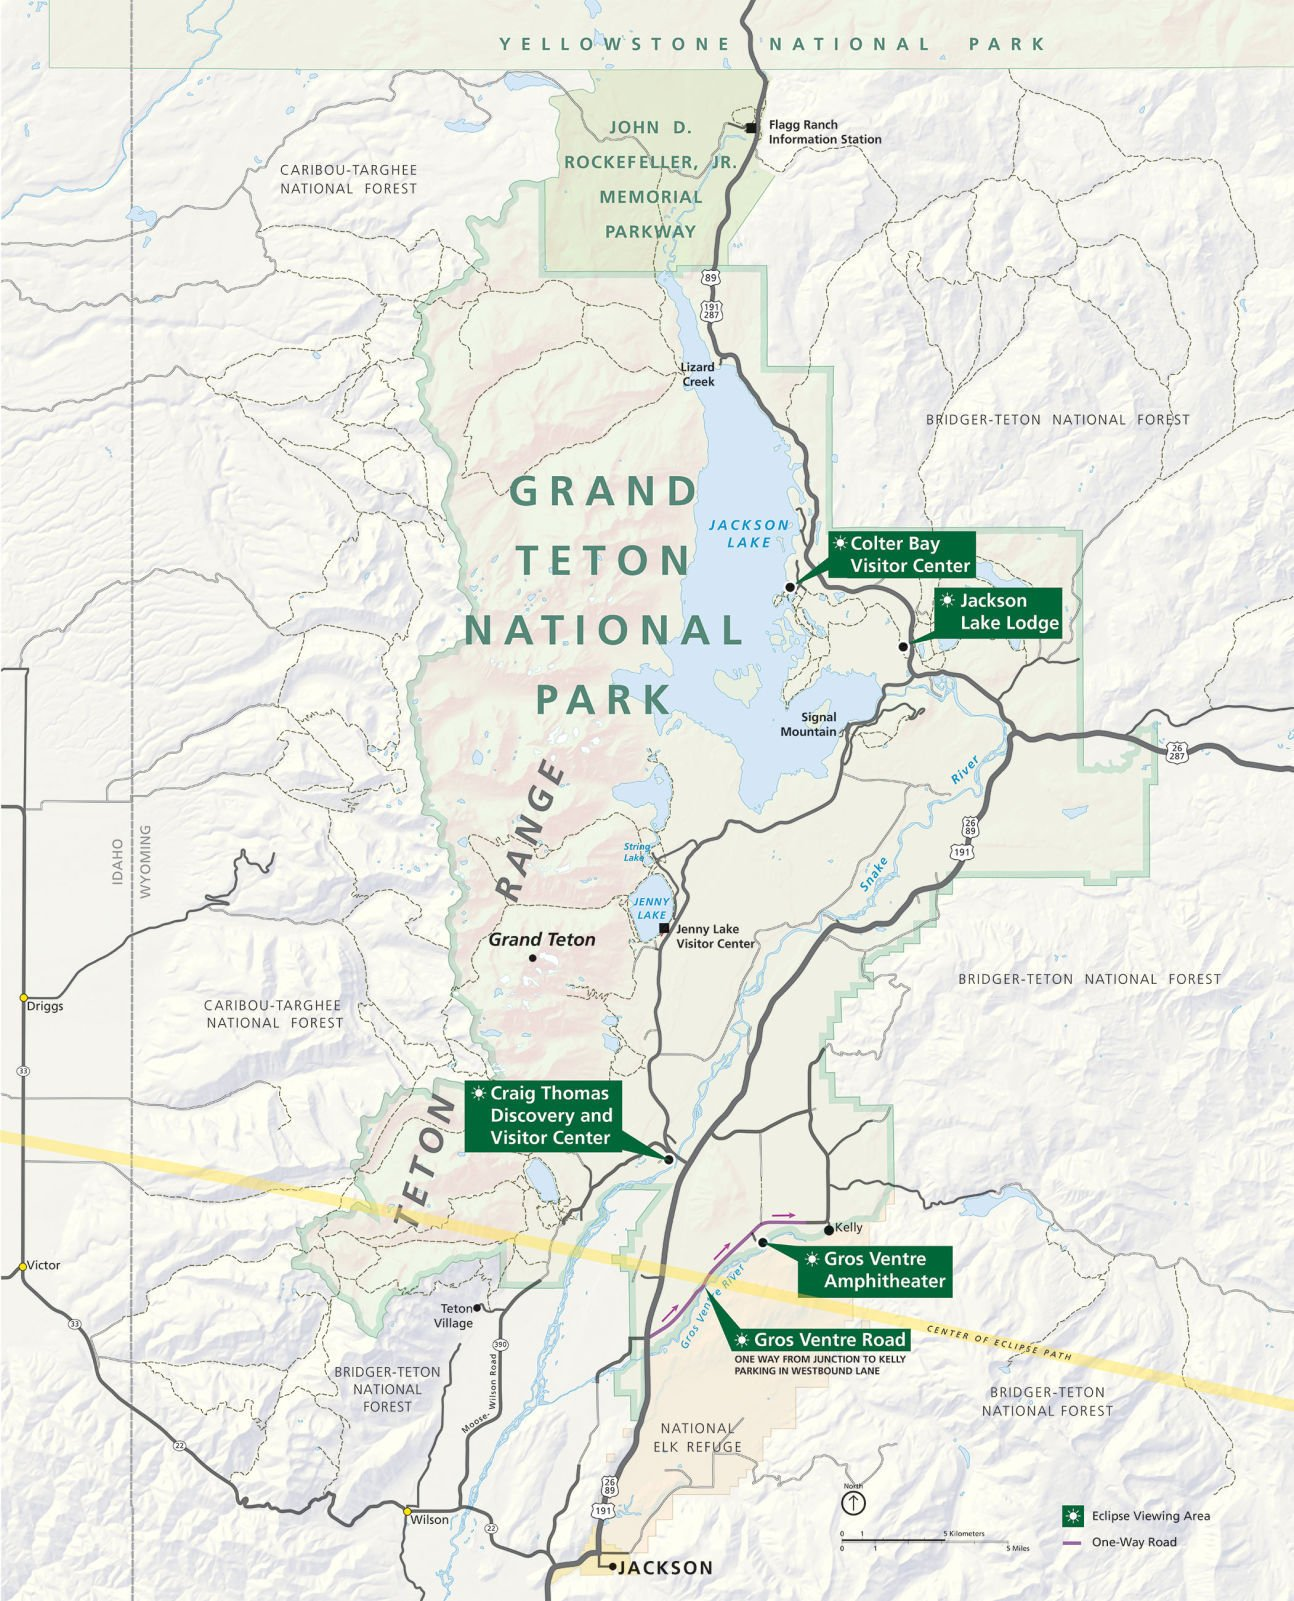 Teton park braces for its busiest day ever Environmental